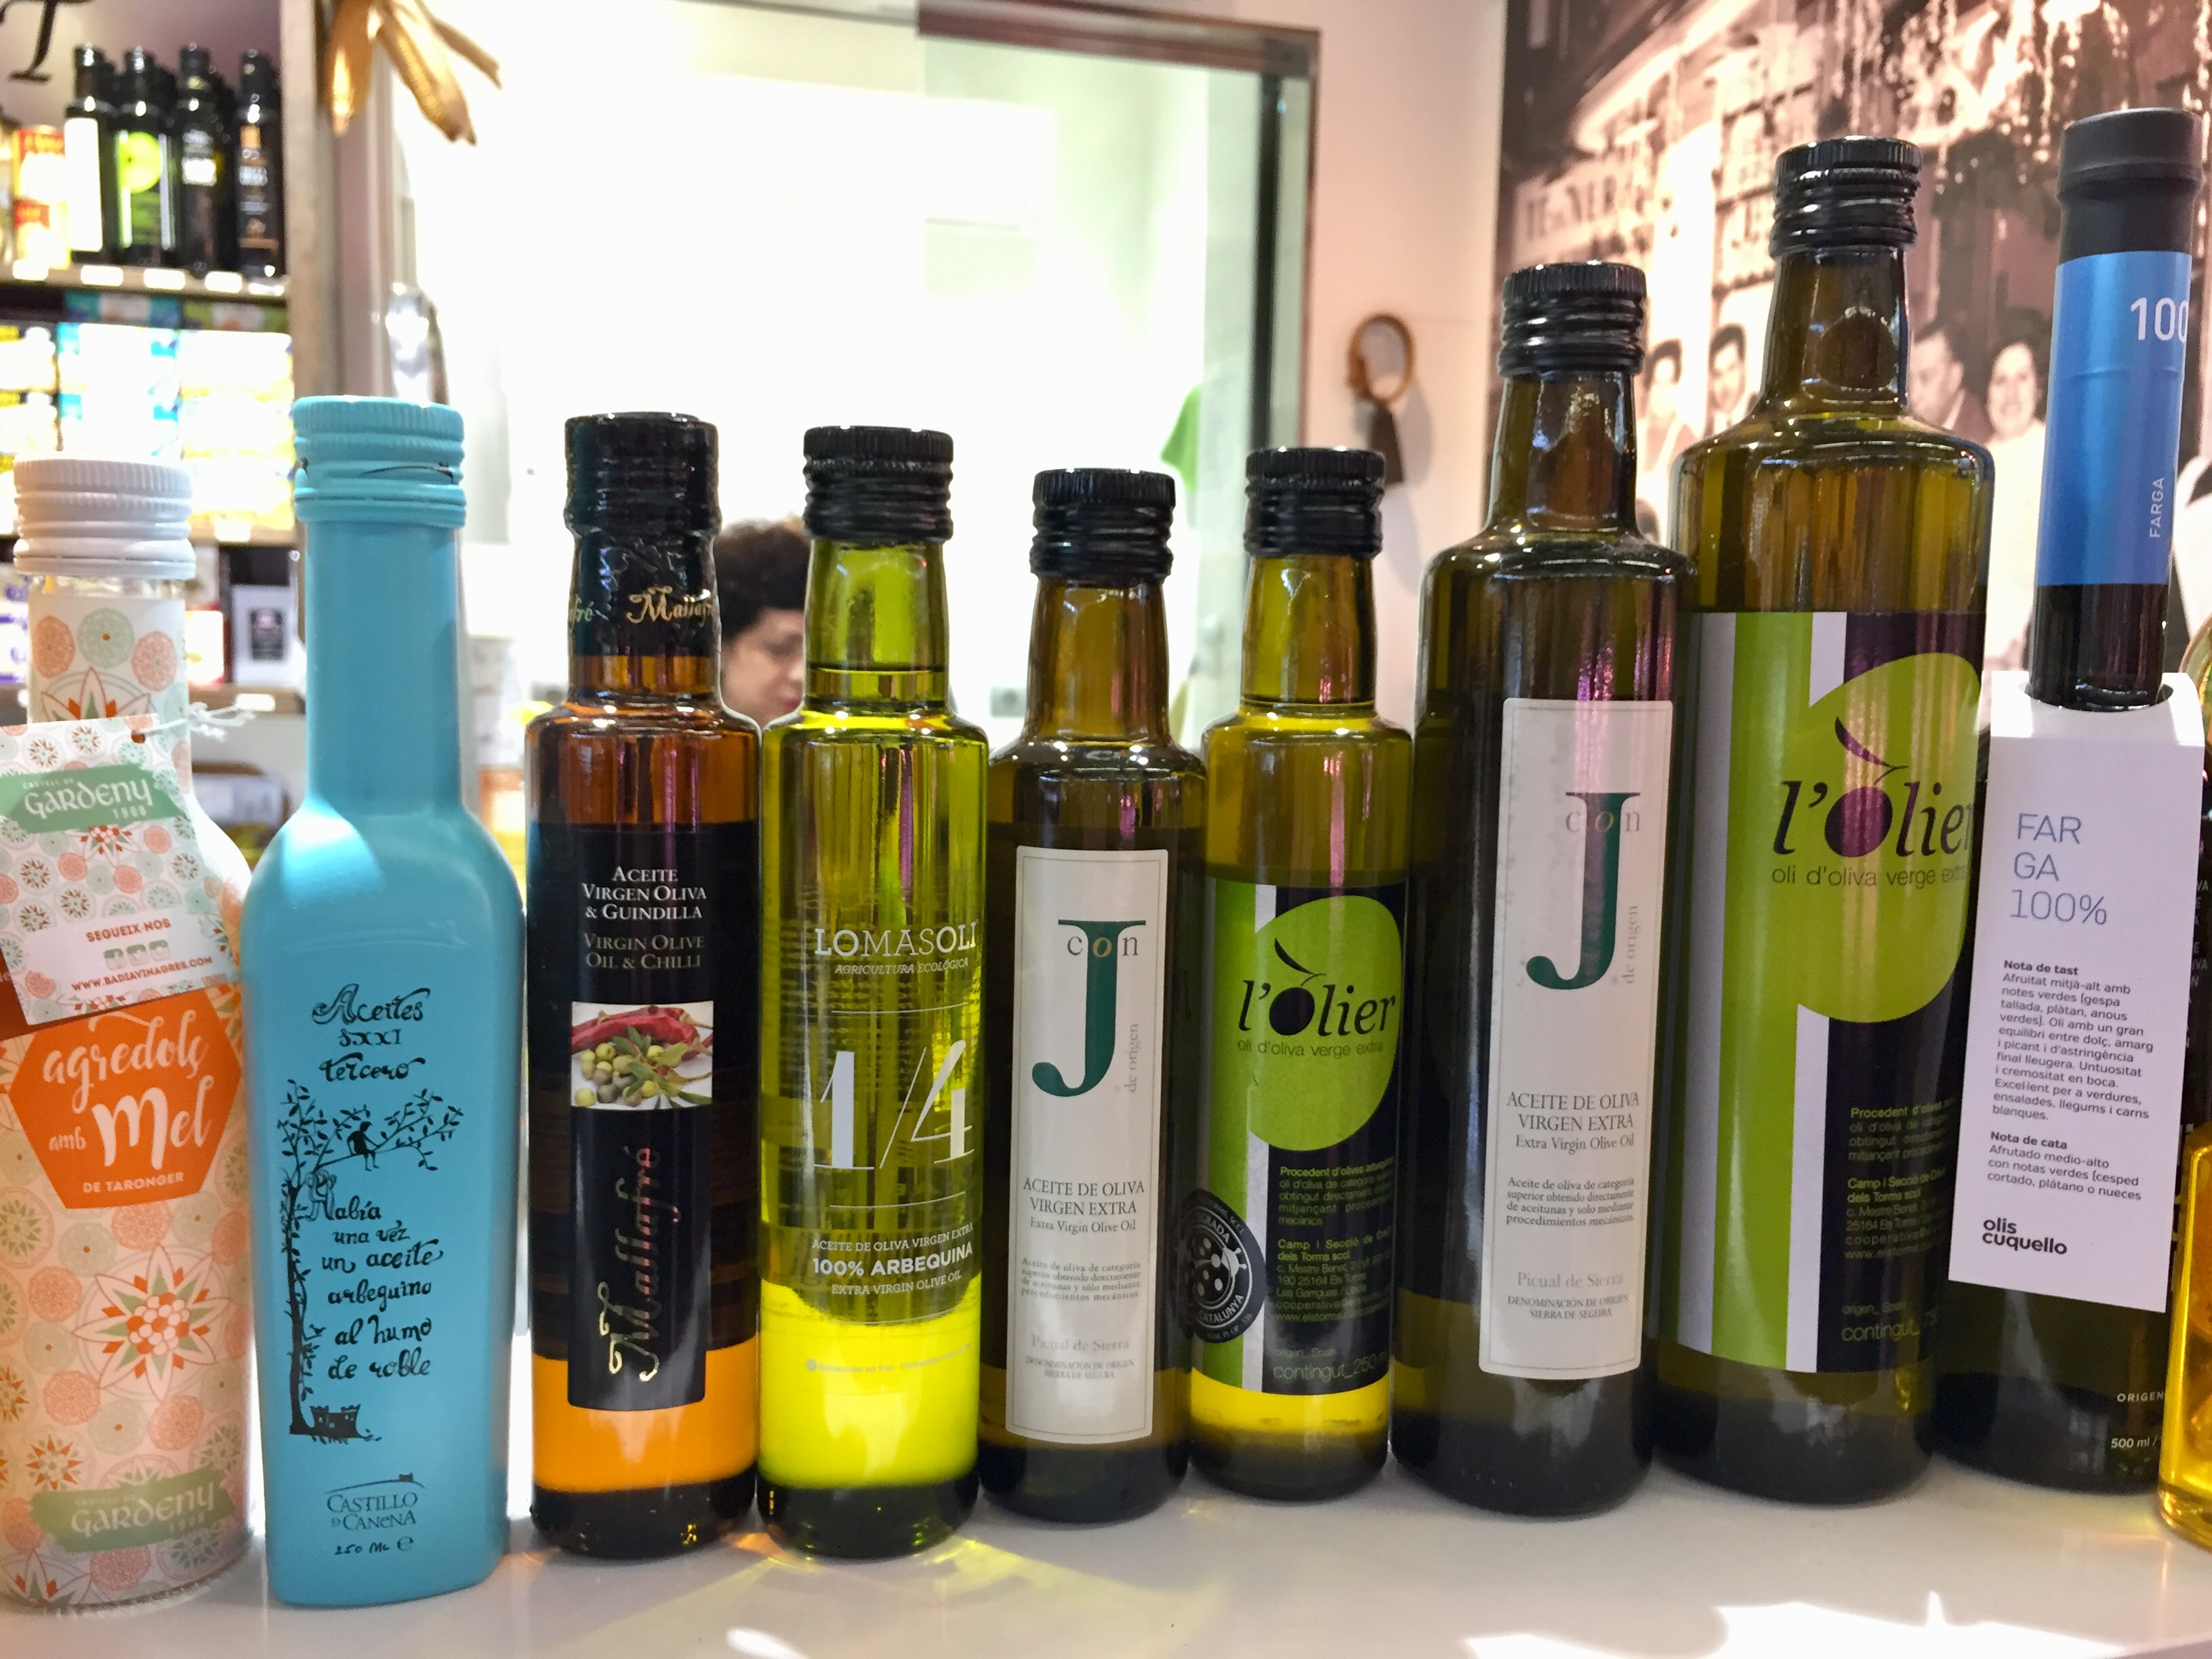 There are so many options when it comes to buying Spanish olive oil!